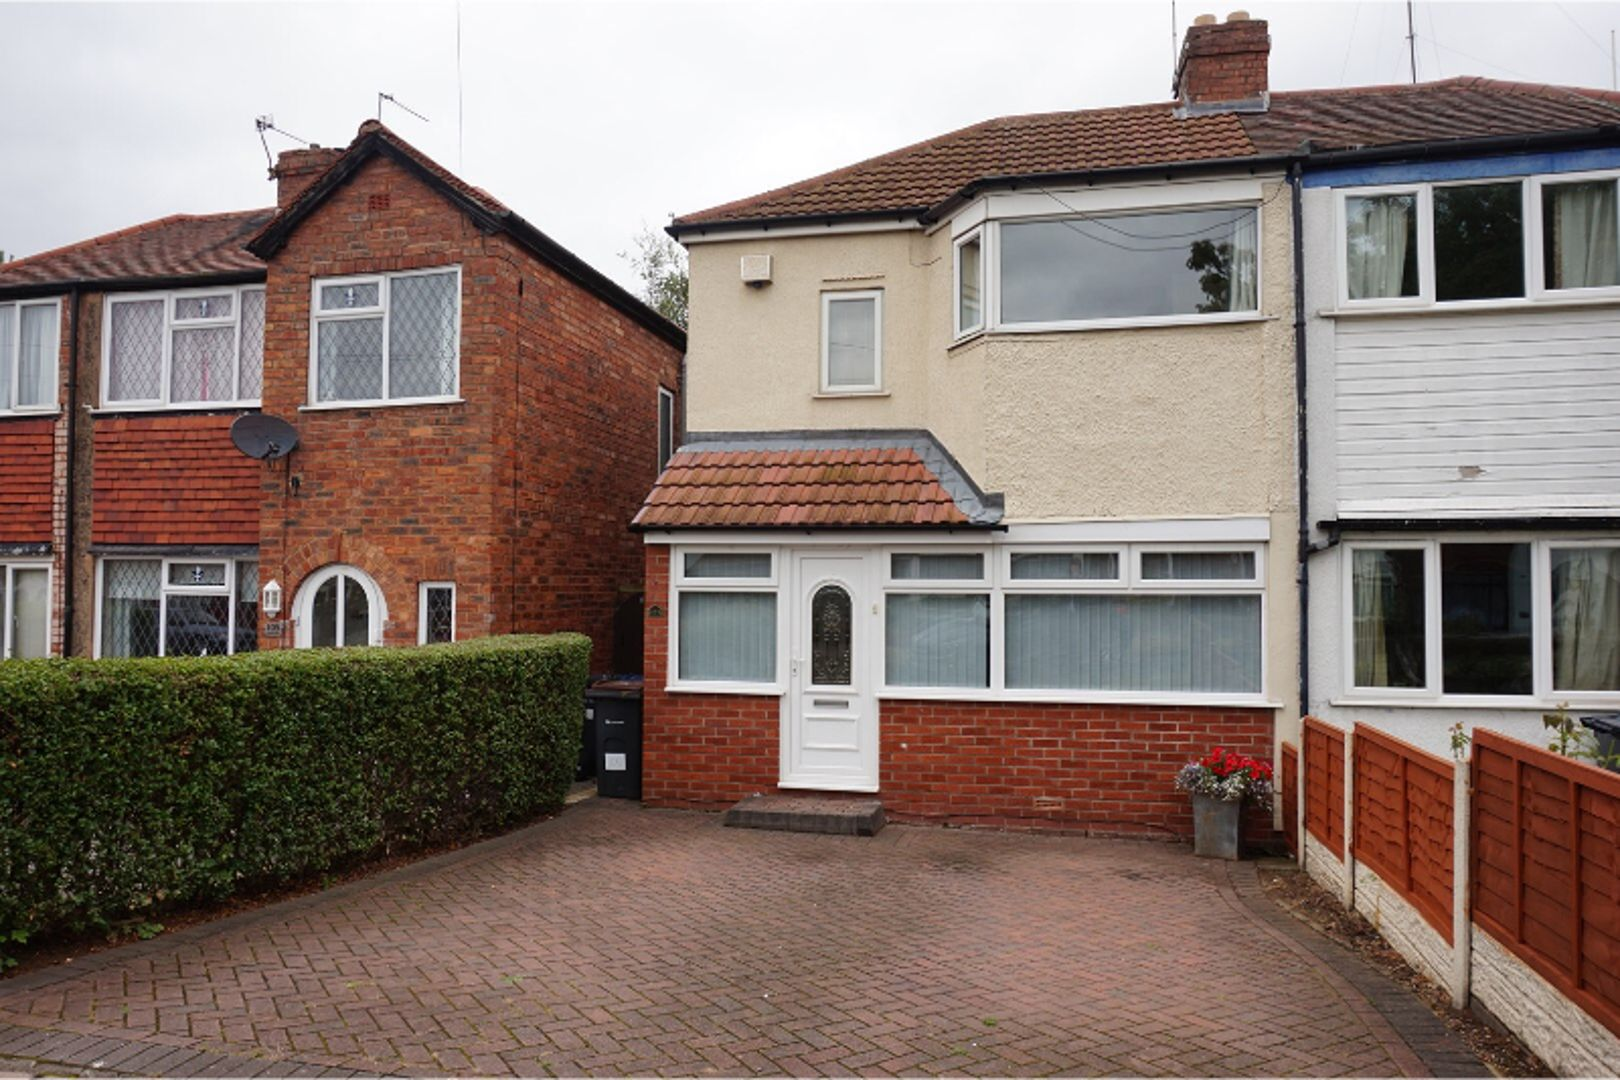 2 Bedroom Semi Detached House For Sale In Goodway Road Great Barr Birmingham B44 8RS